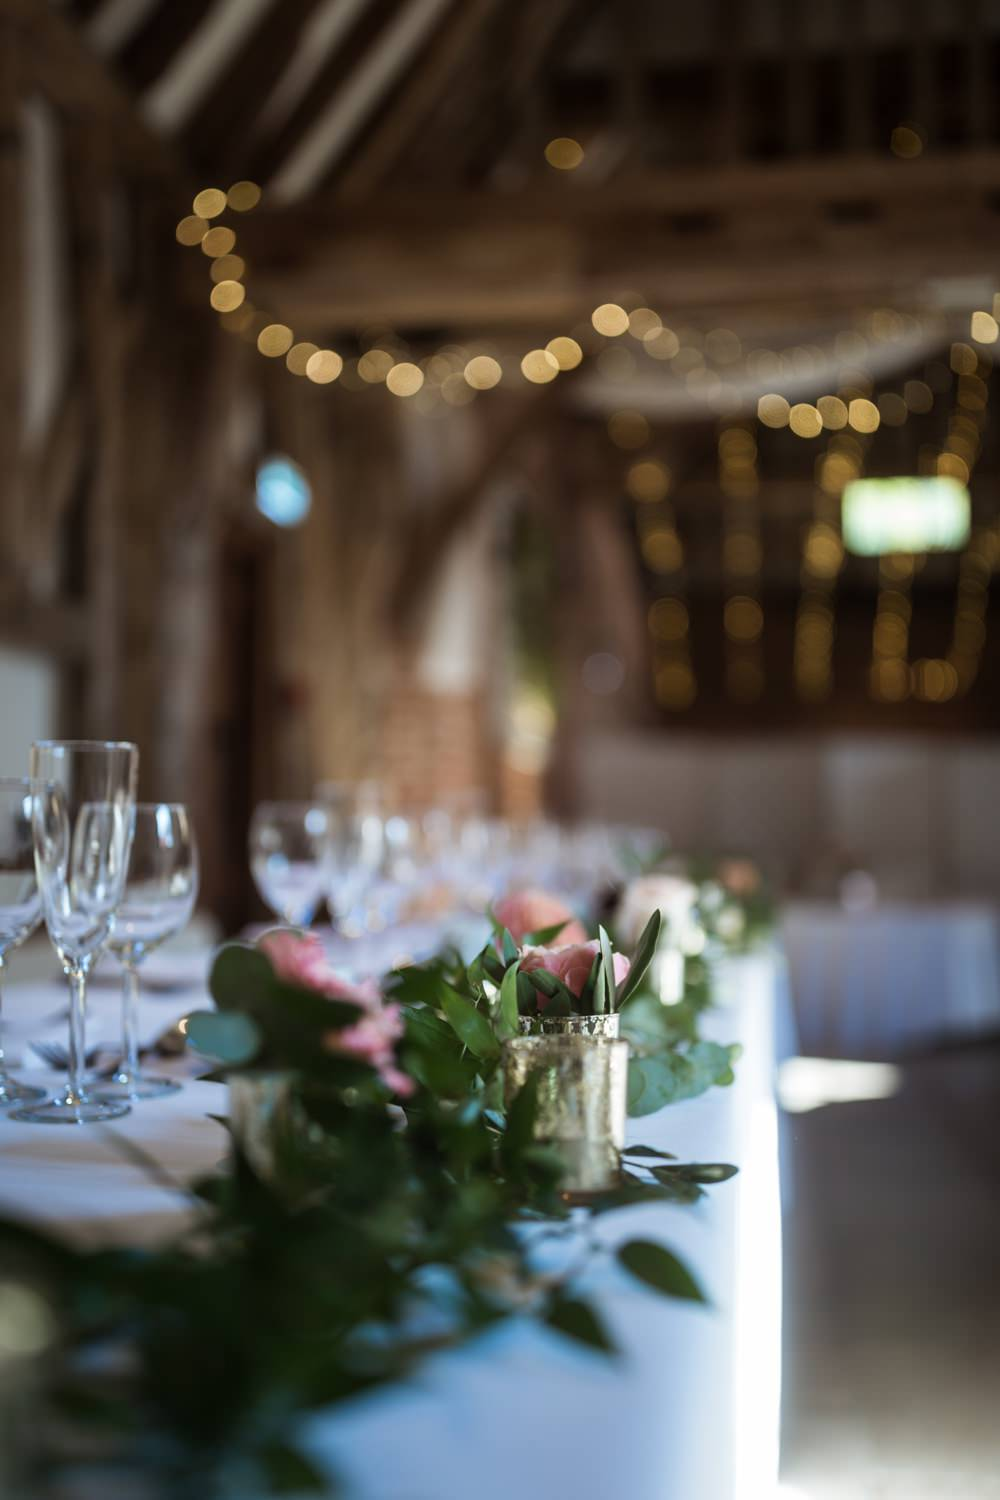 Haughley Park Barn WeddingTop Table Foliage Greenery Flowers Runner Him and Her Wedding Photography